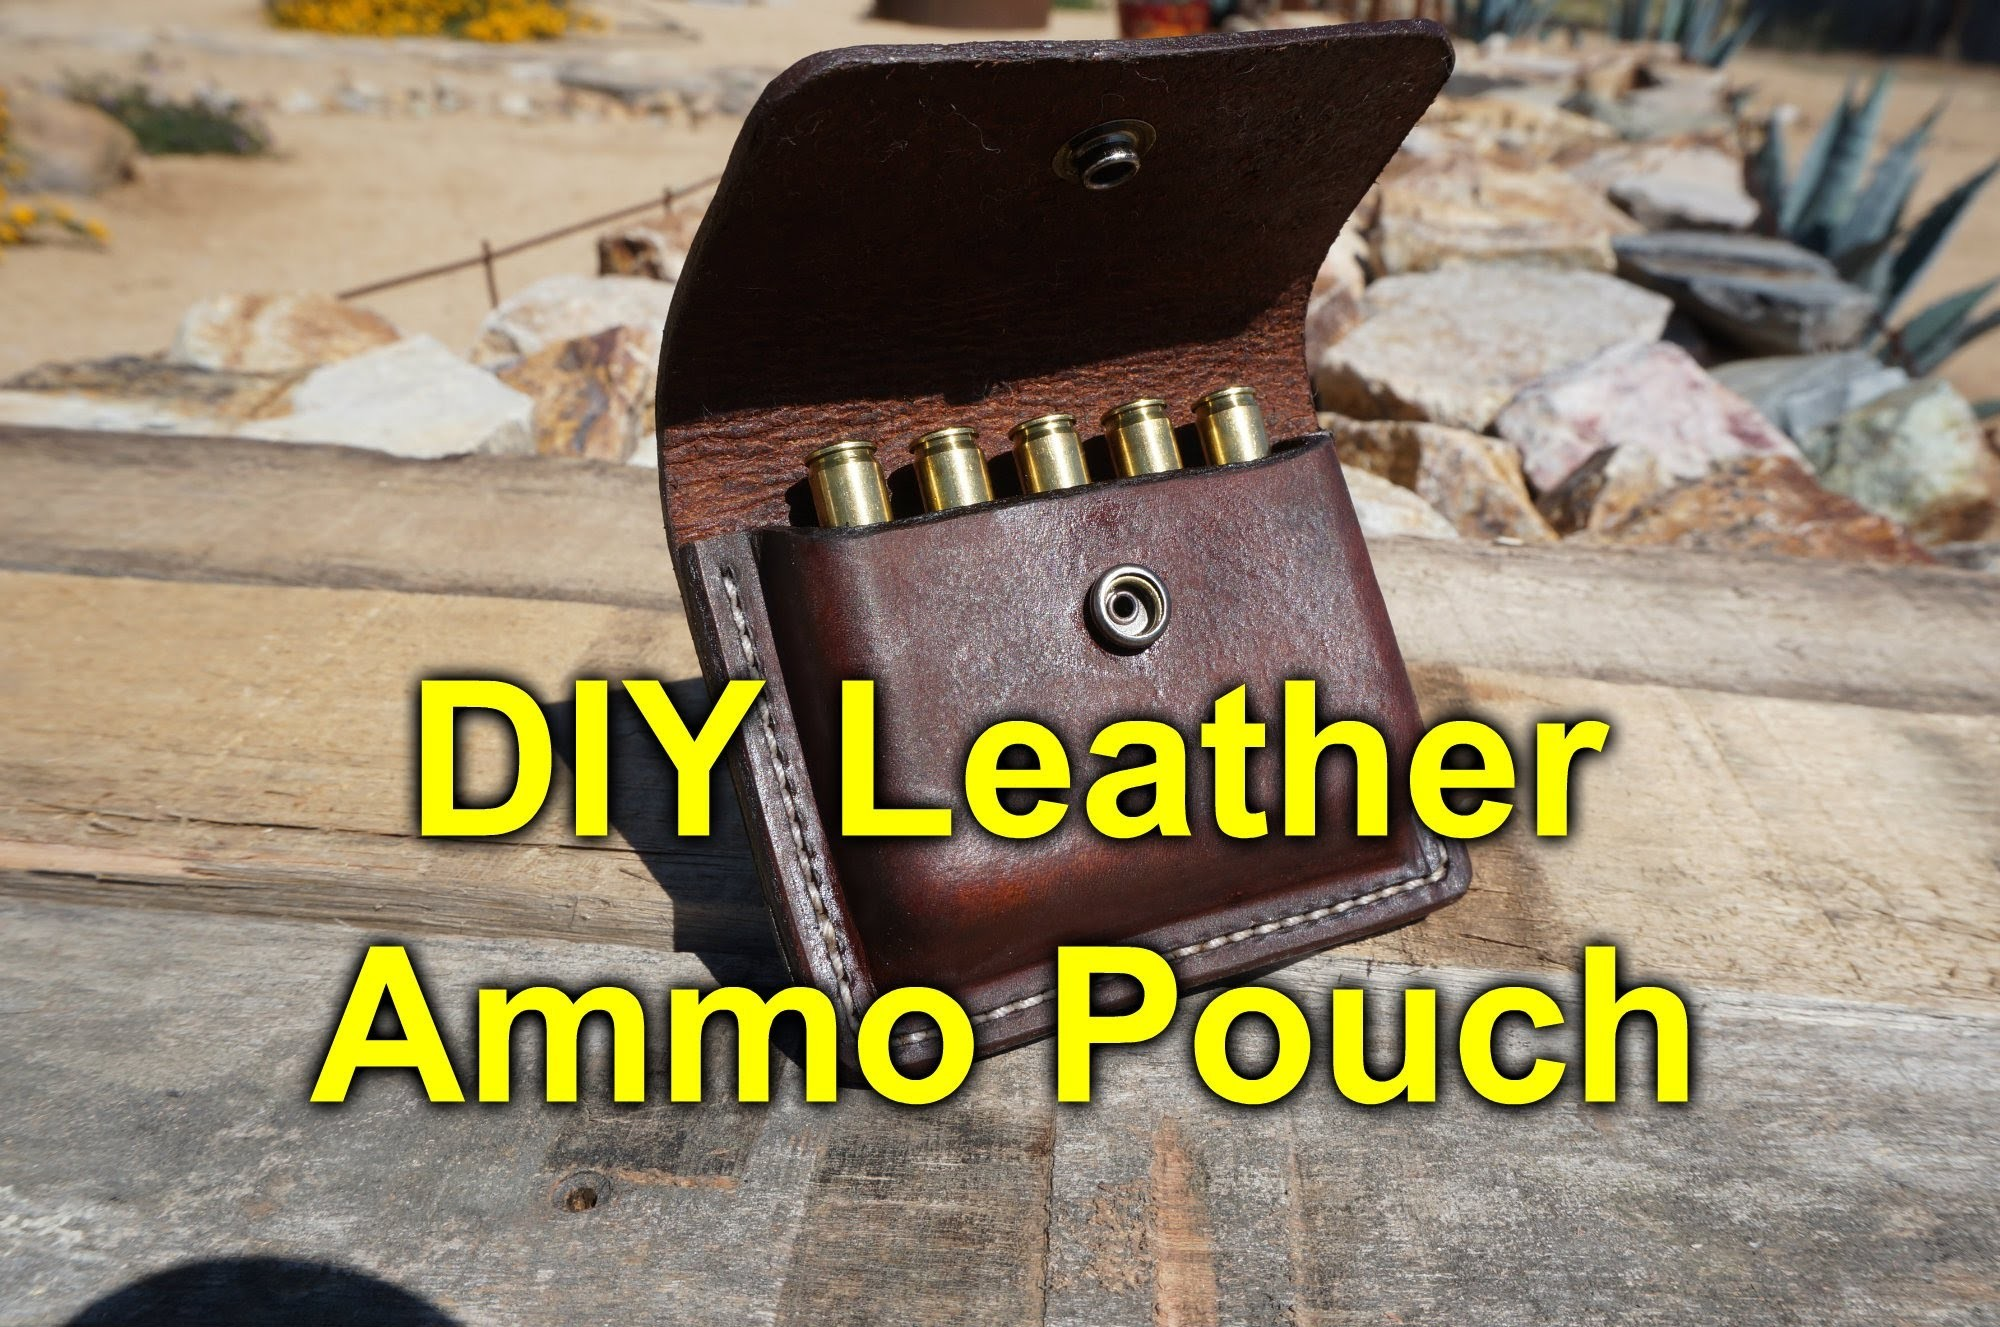 DIY Leather Ammo Pouch. Carrier